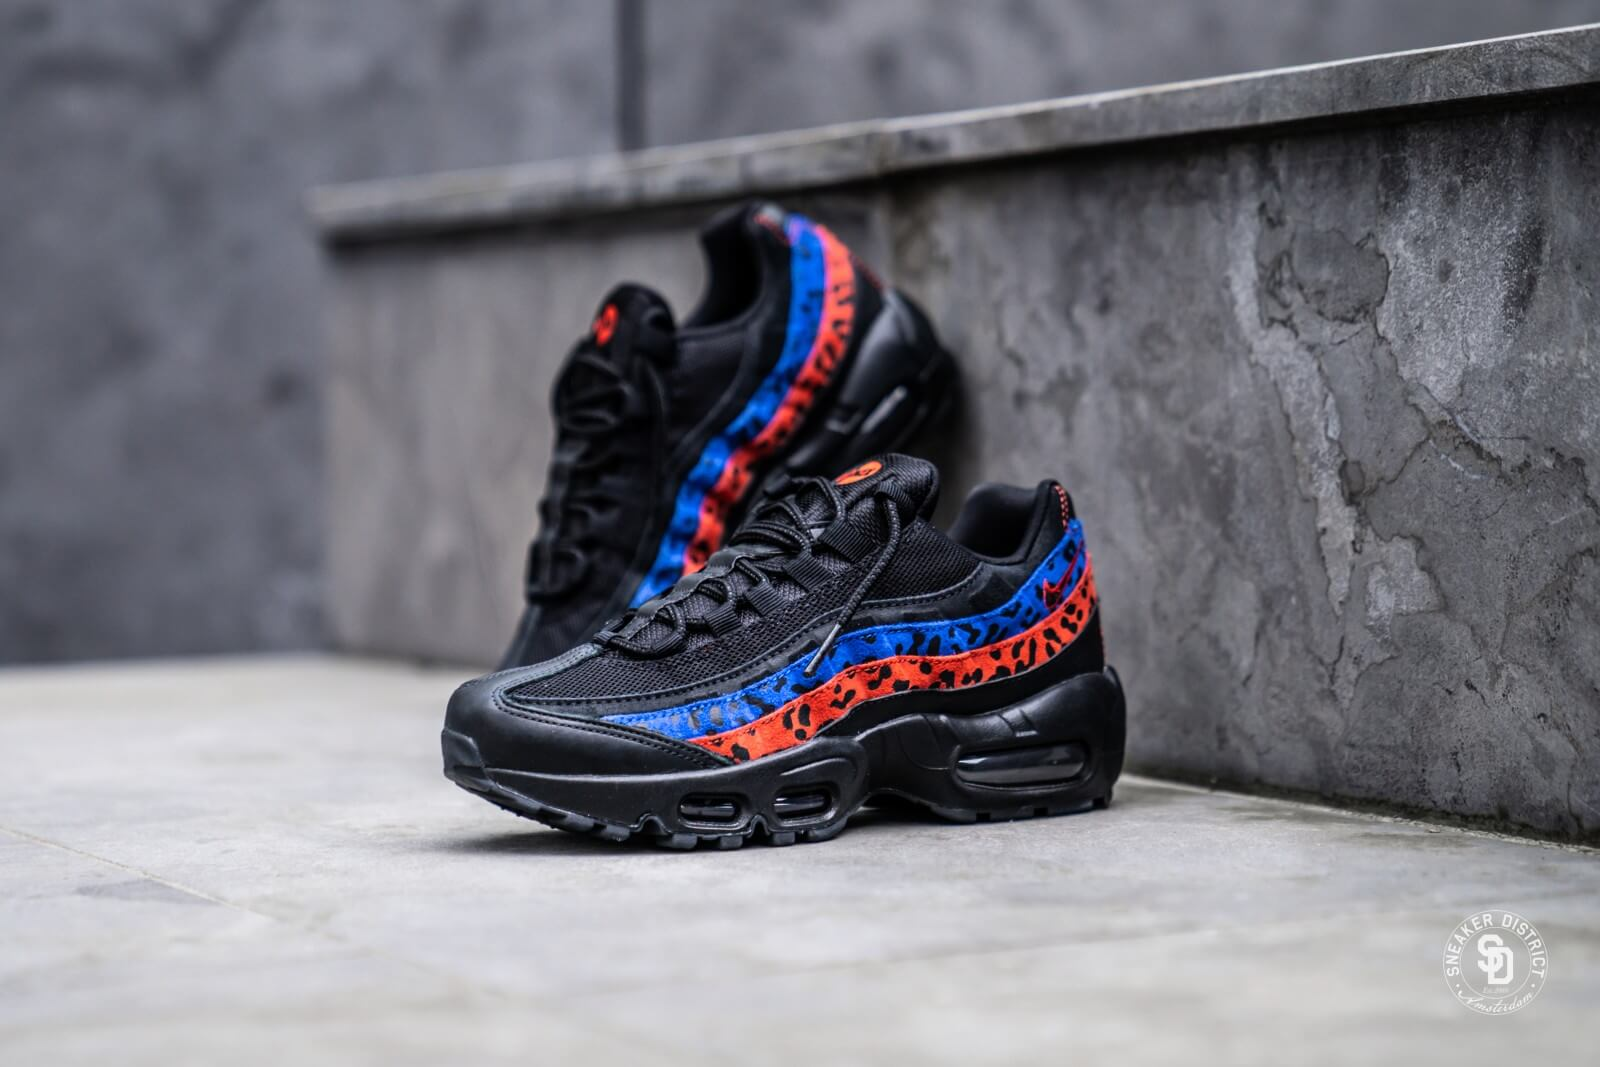 Nike Air Max 95 Premium Black Leopard Habanero RedRacer Blue CD0180 001